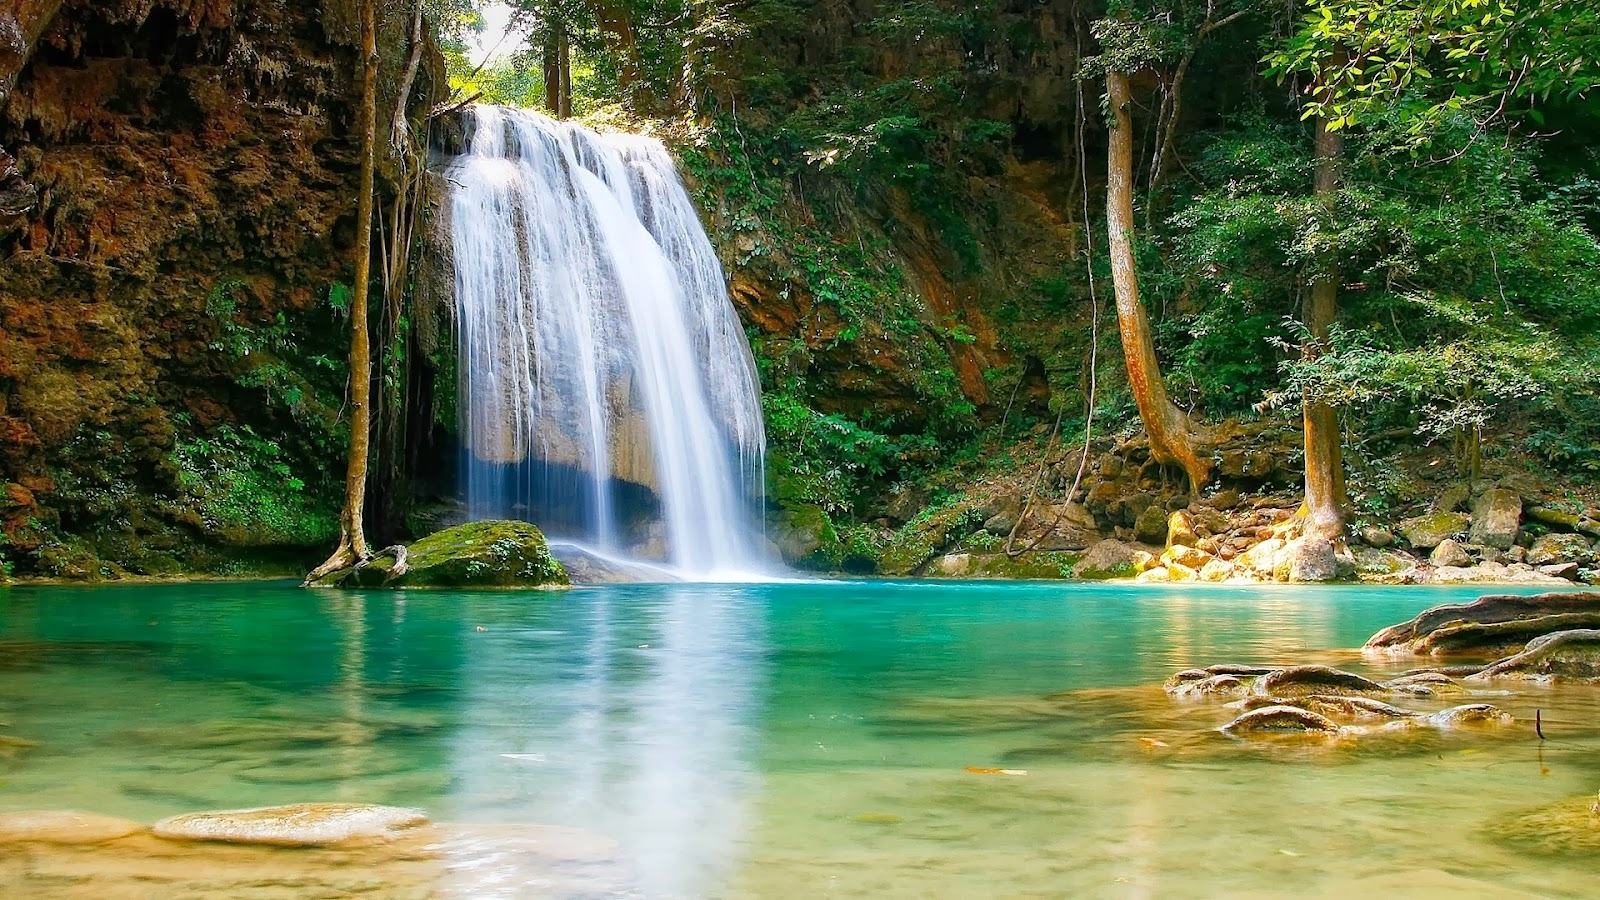 Full hd nature wallpapers free download for laptop pc - Nature wallpaper of waterfall ...